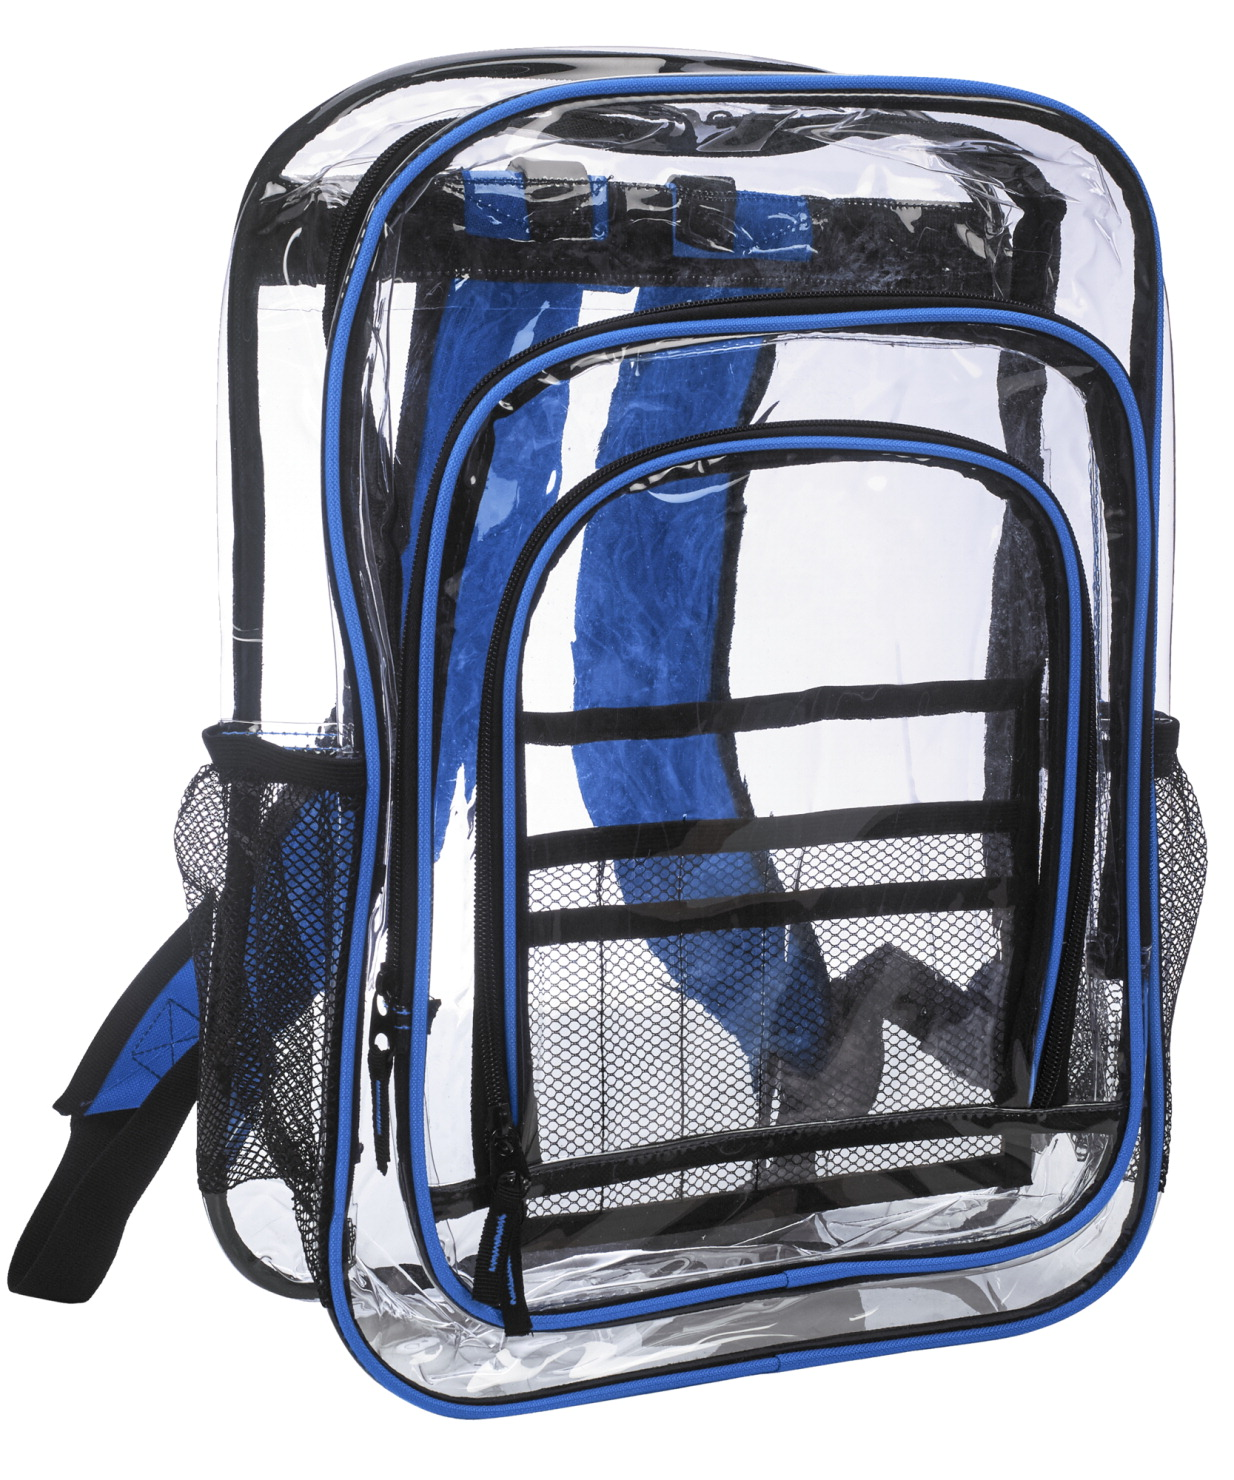 Jumbo Clear Backpack, Royal, 17-1/2 x 13 x 6-1/2 Inches